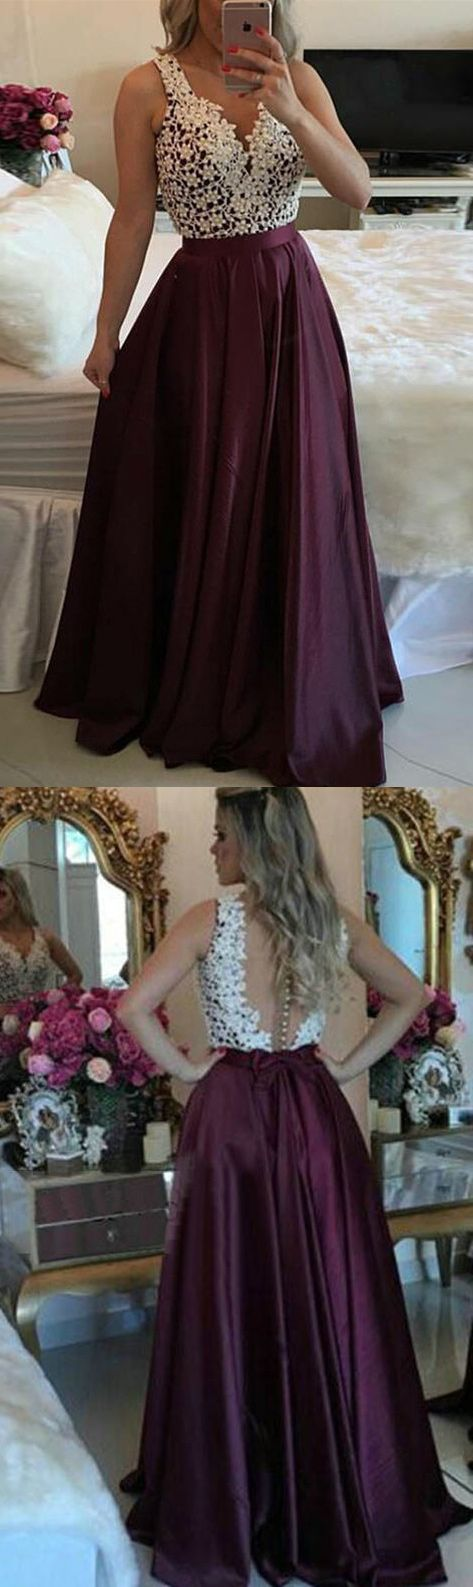 burgundy long prom dresses, dresses for women, new arrival prom dresses, high quality prom dresses, dresses for party, 2017 cheap prom dresses